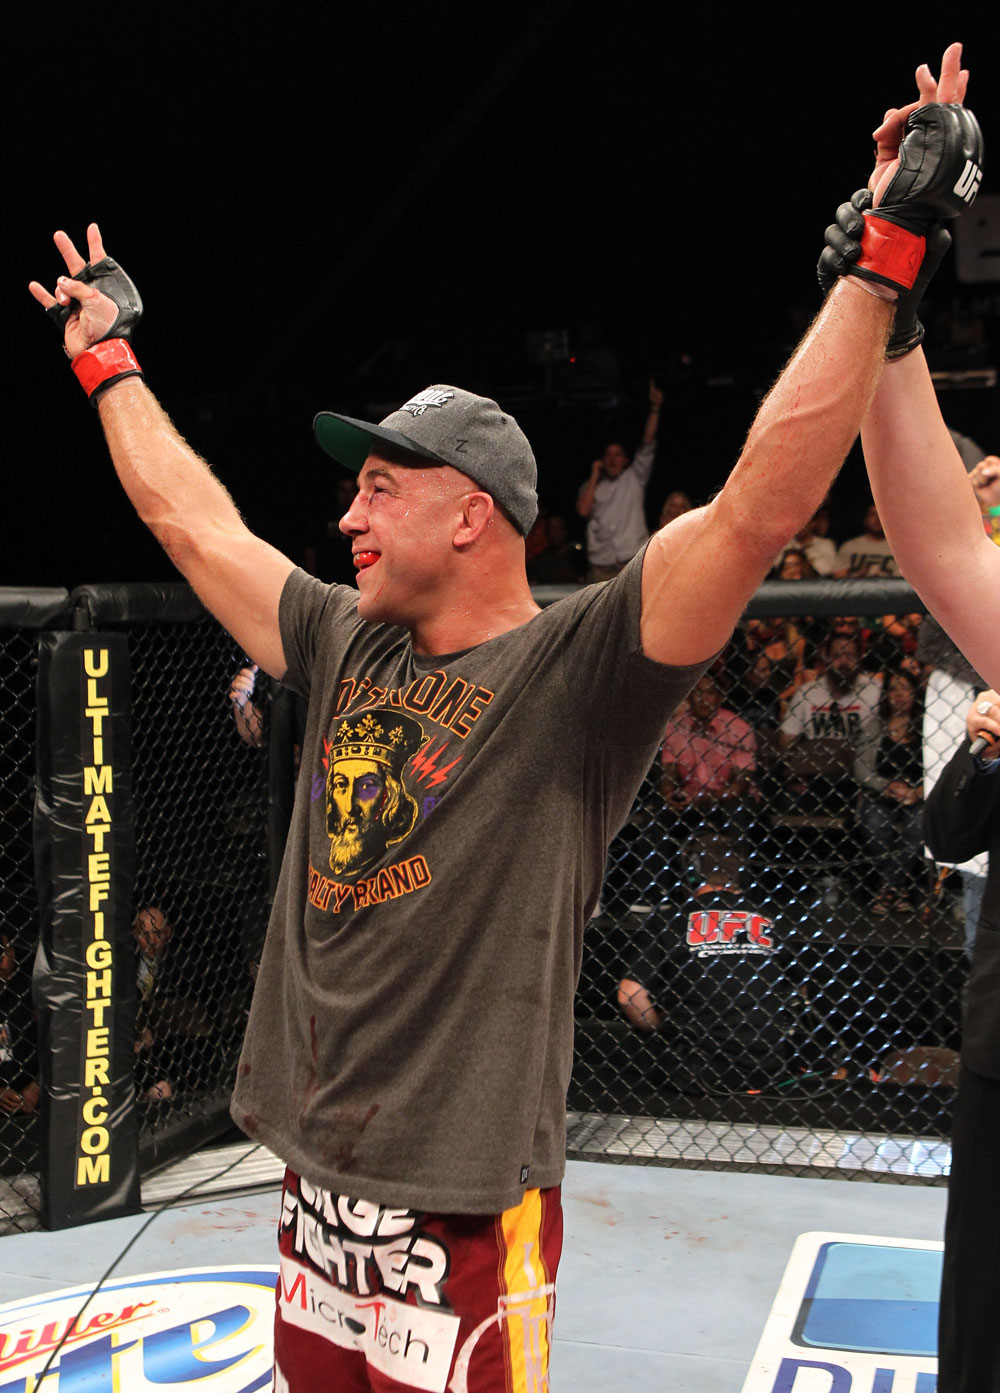 The Ultimate Fighter Season 13 Finale: Kyle Kingsbury celebrates his win